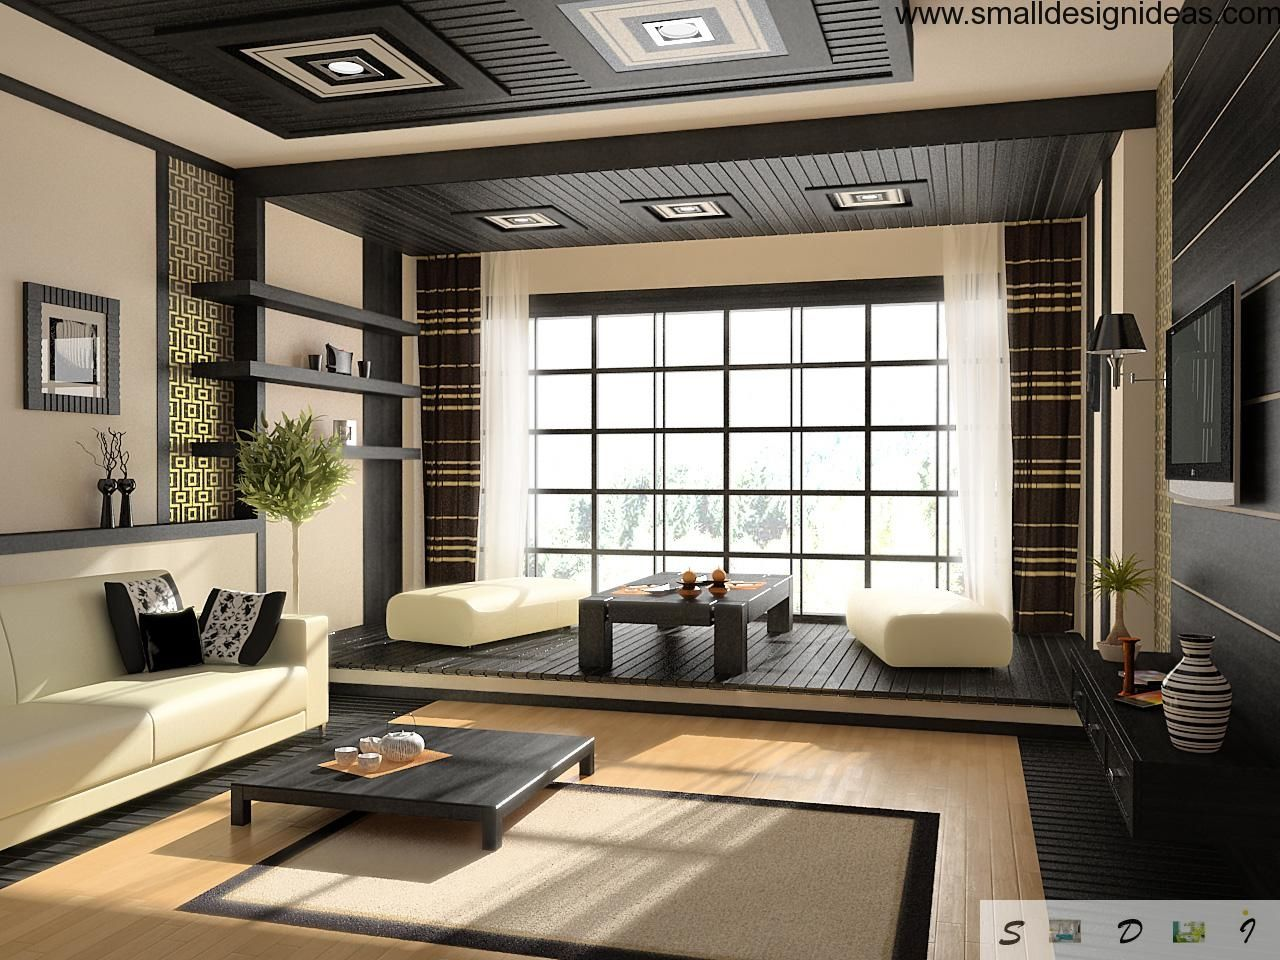 Japanese decor living room - 10 Things To Know Before Remodeling Your Interior Into Japanese Style